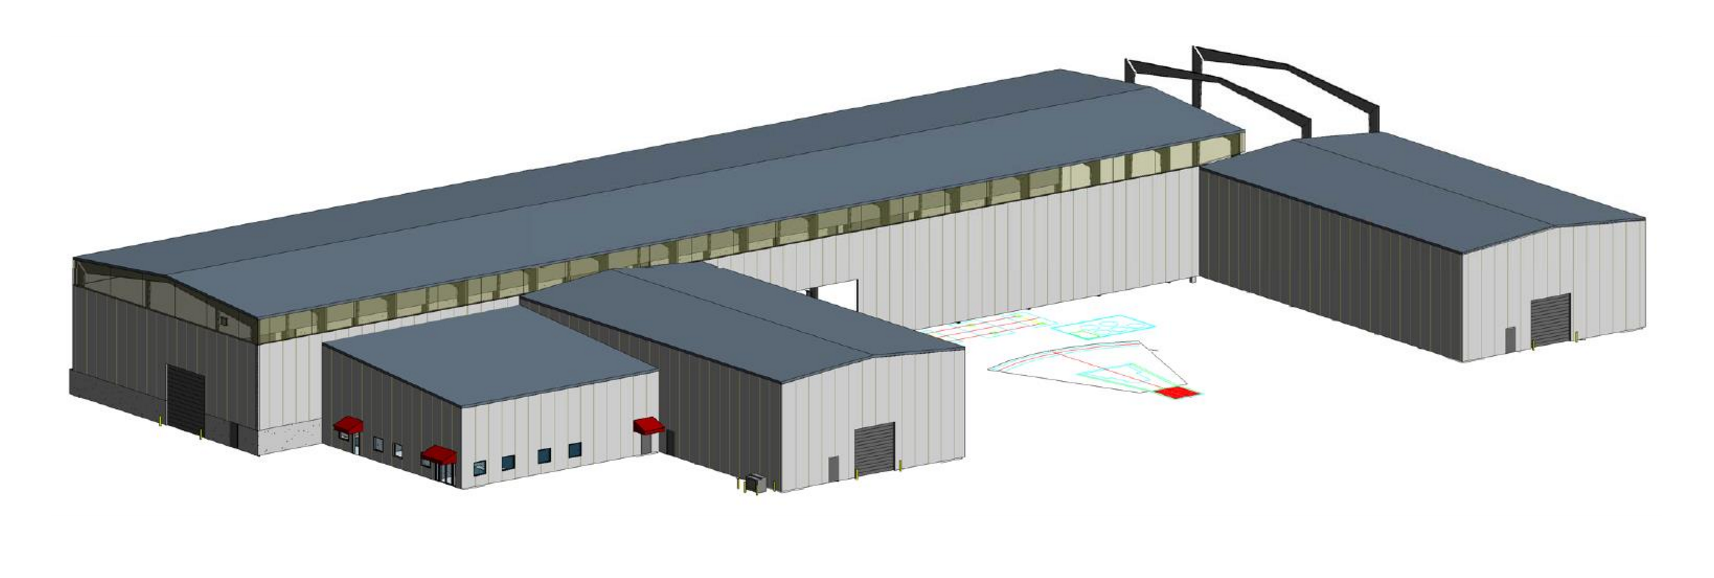 Proposed Production Building & Office for Oldcastle Precast